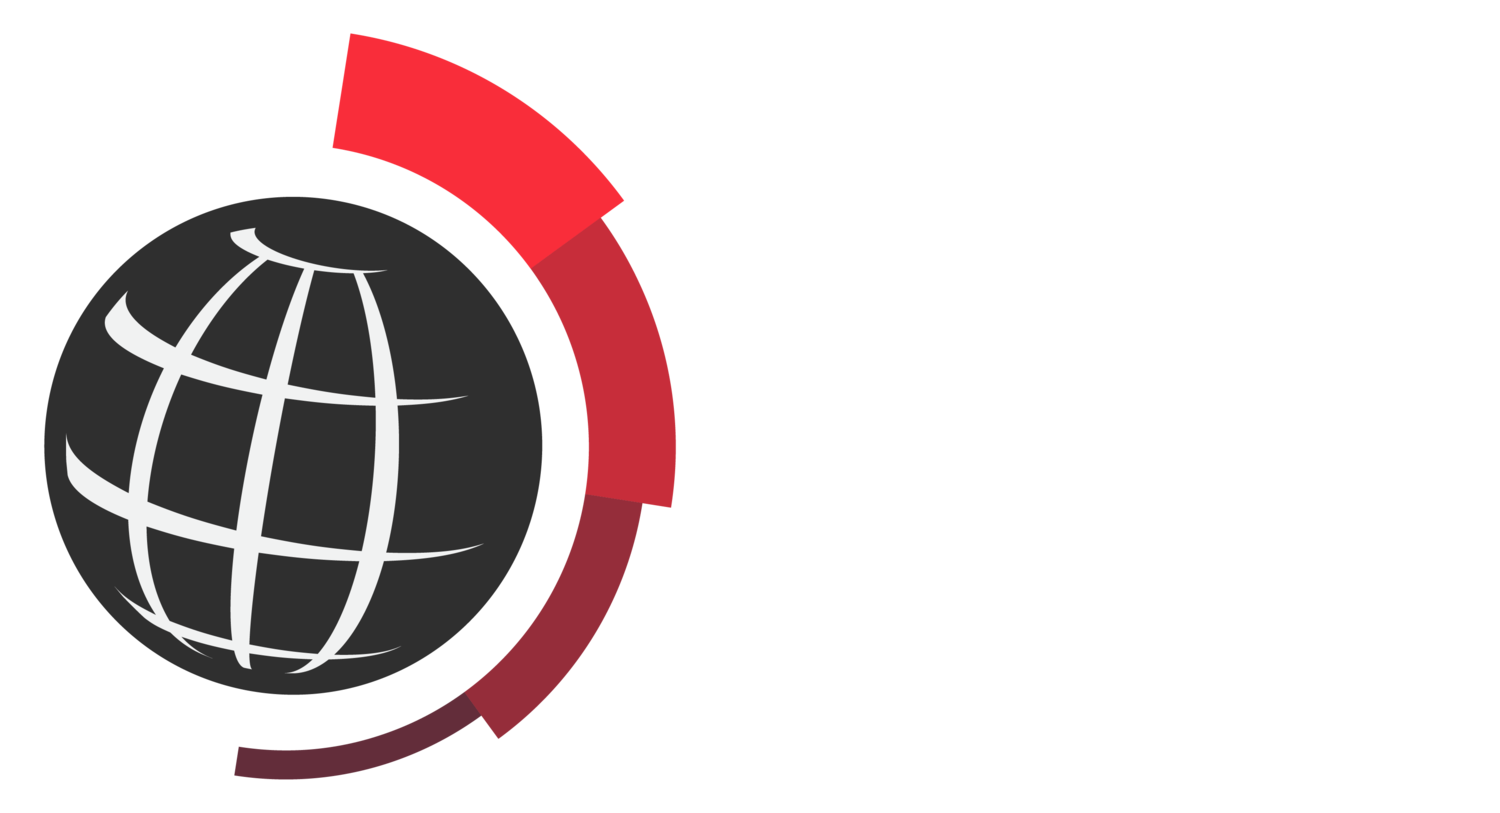 NUI Galway Finance Society